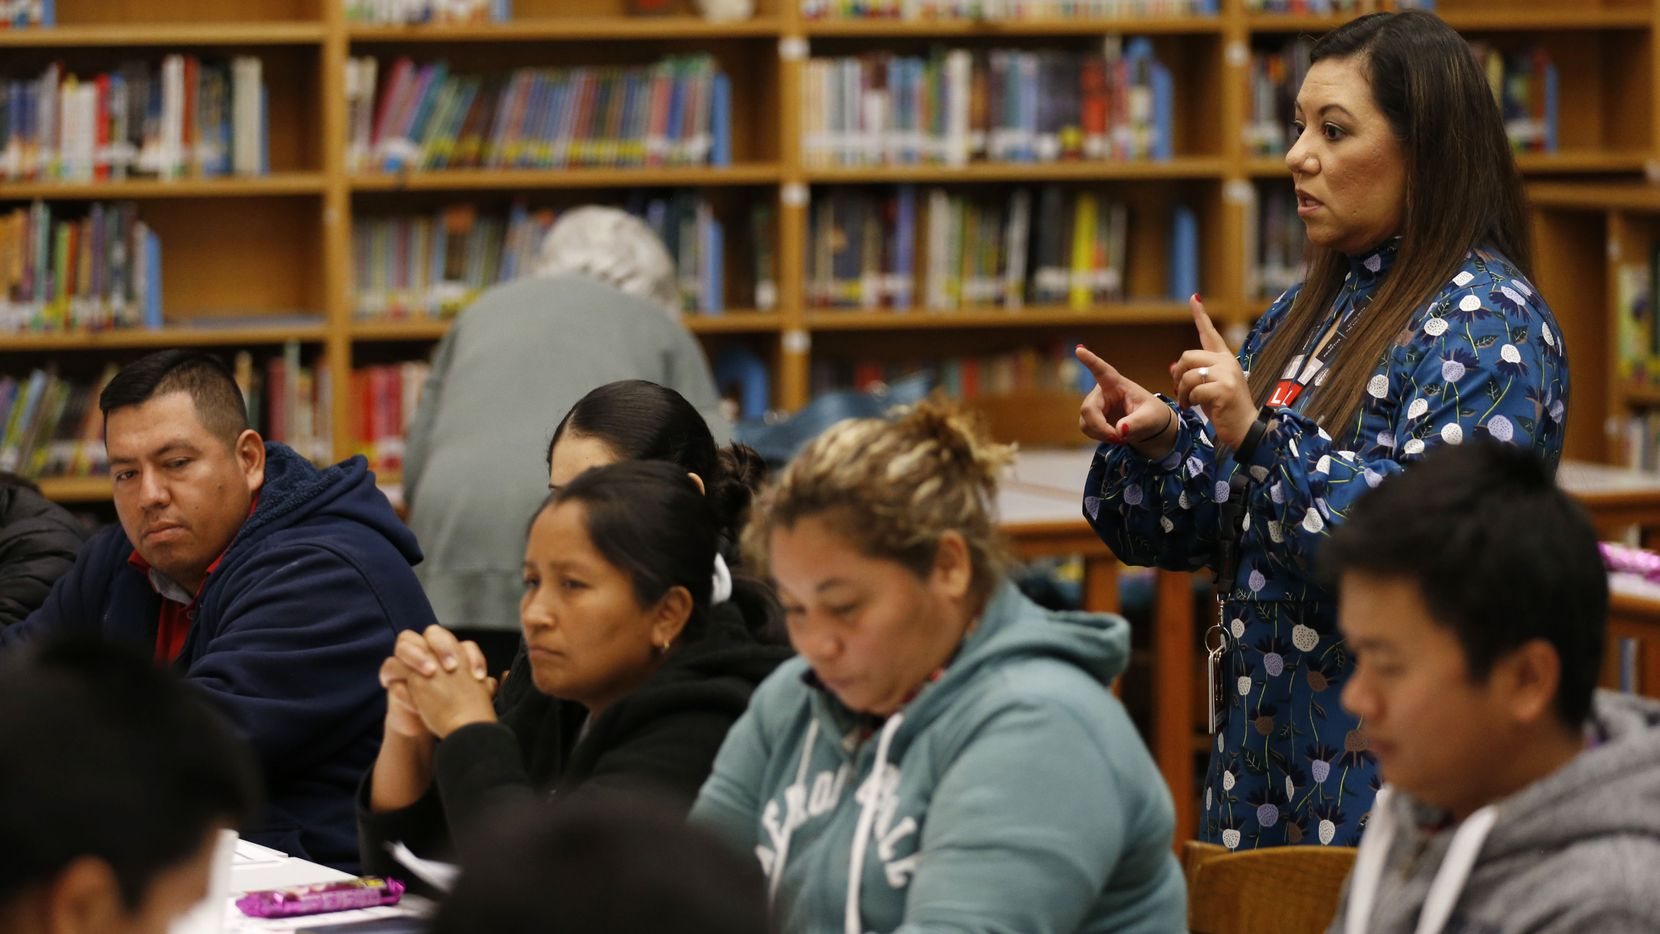 Principal Sandra Barrios talks to parents during a parent teacher organization (PTO) meeting at Jack Lowe Sr. Elementary School in Dallas on Friday, October 25, 2019. Barrios was honored by U.S. Education Secretary Betsy DeVos  this week as one of 10 national winners of the 2019 Terrel H. Bell Awards for Outstanding School Leadership.